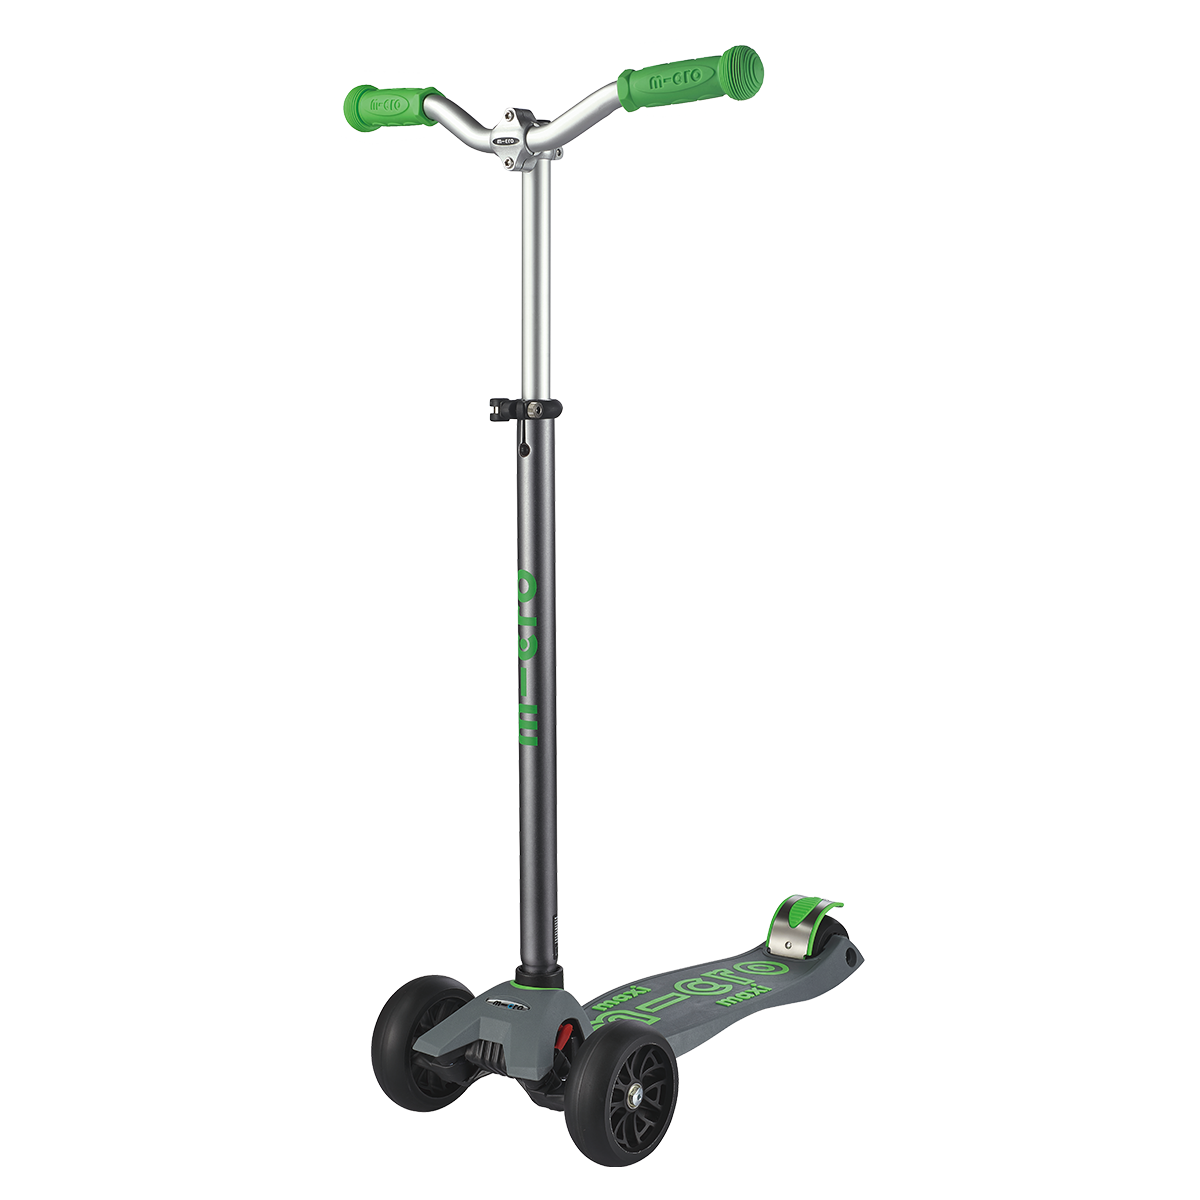 Maxi Deluxe Pro Scooter - Green by Micro Kickboard